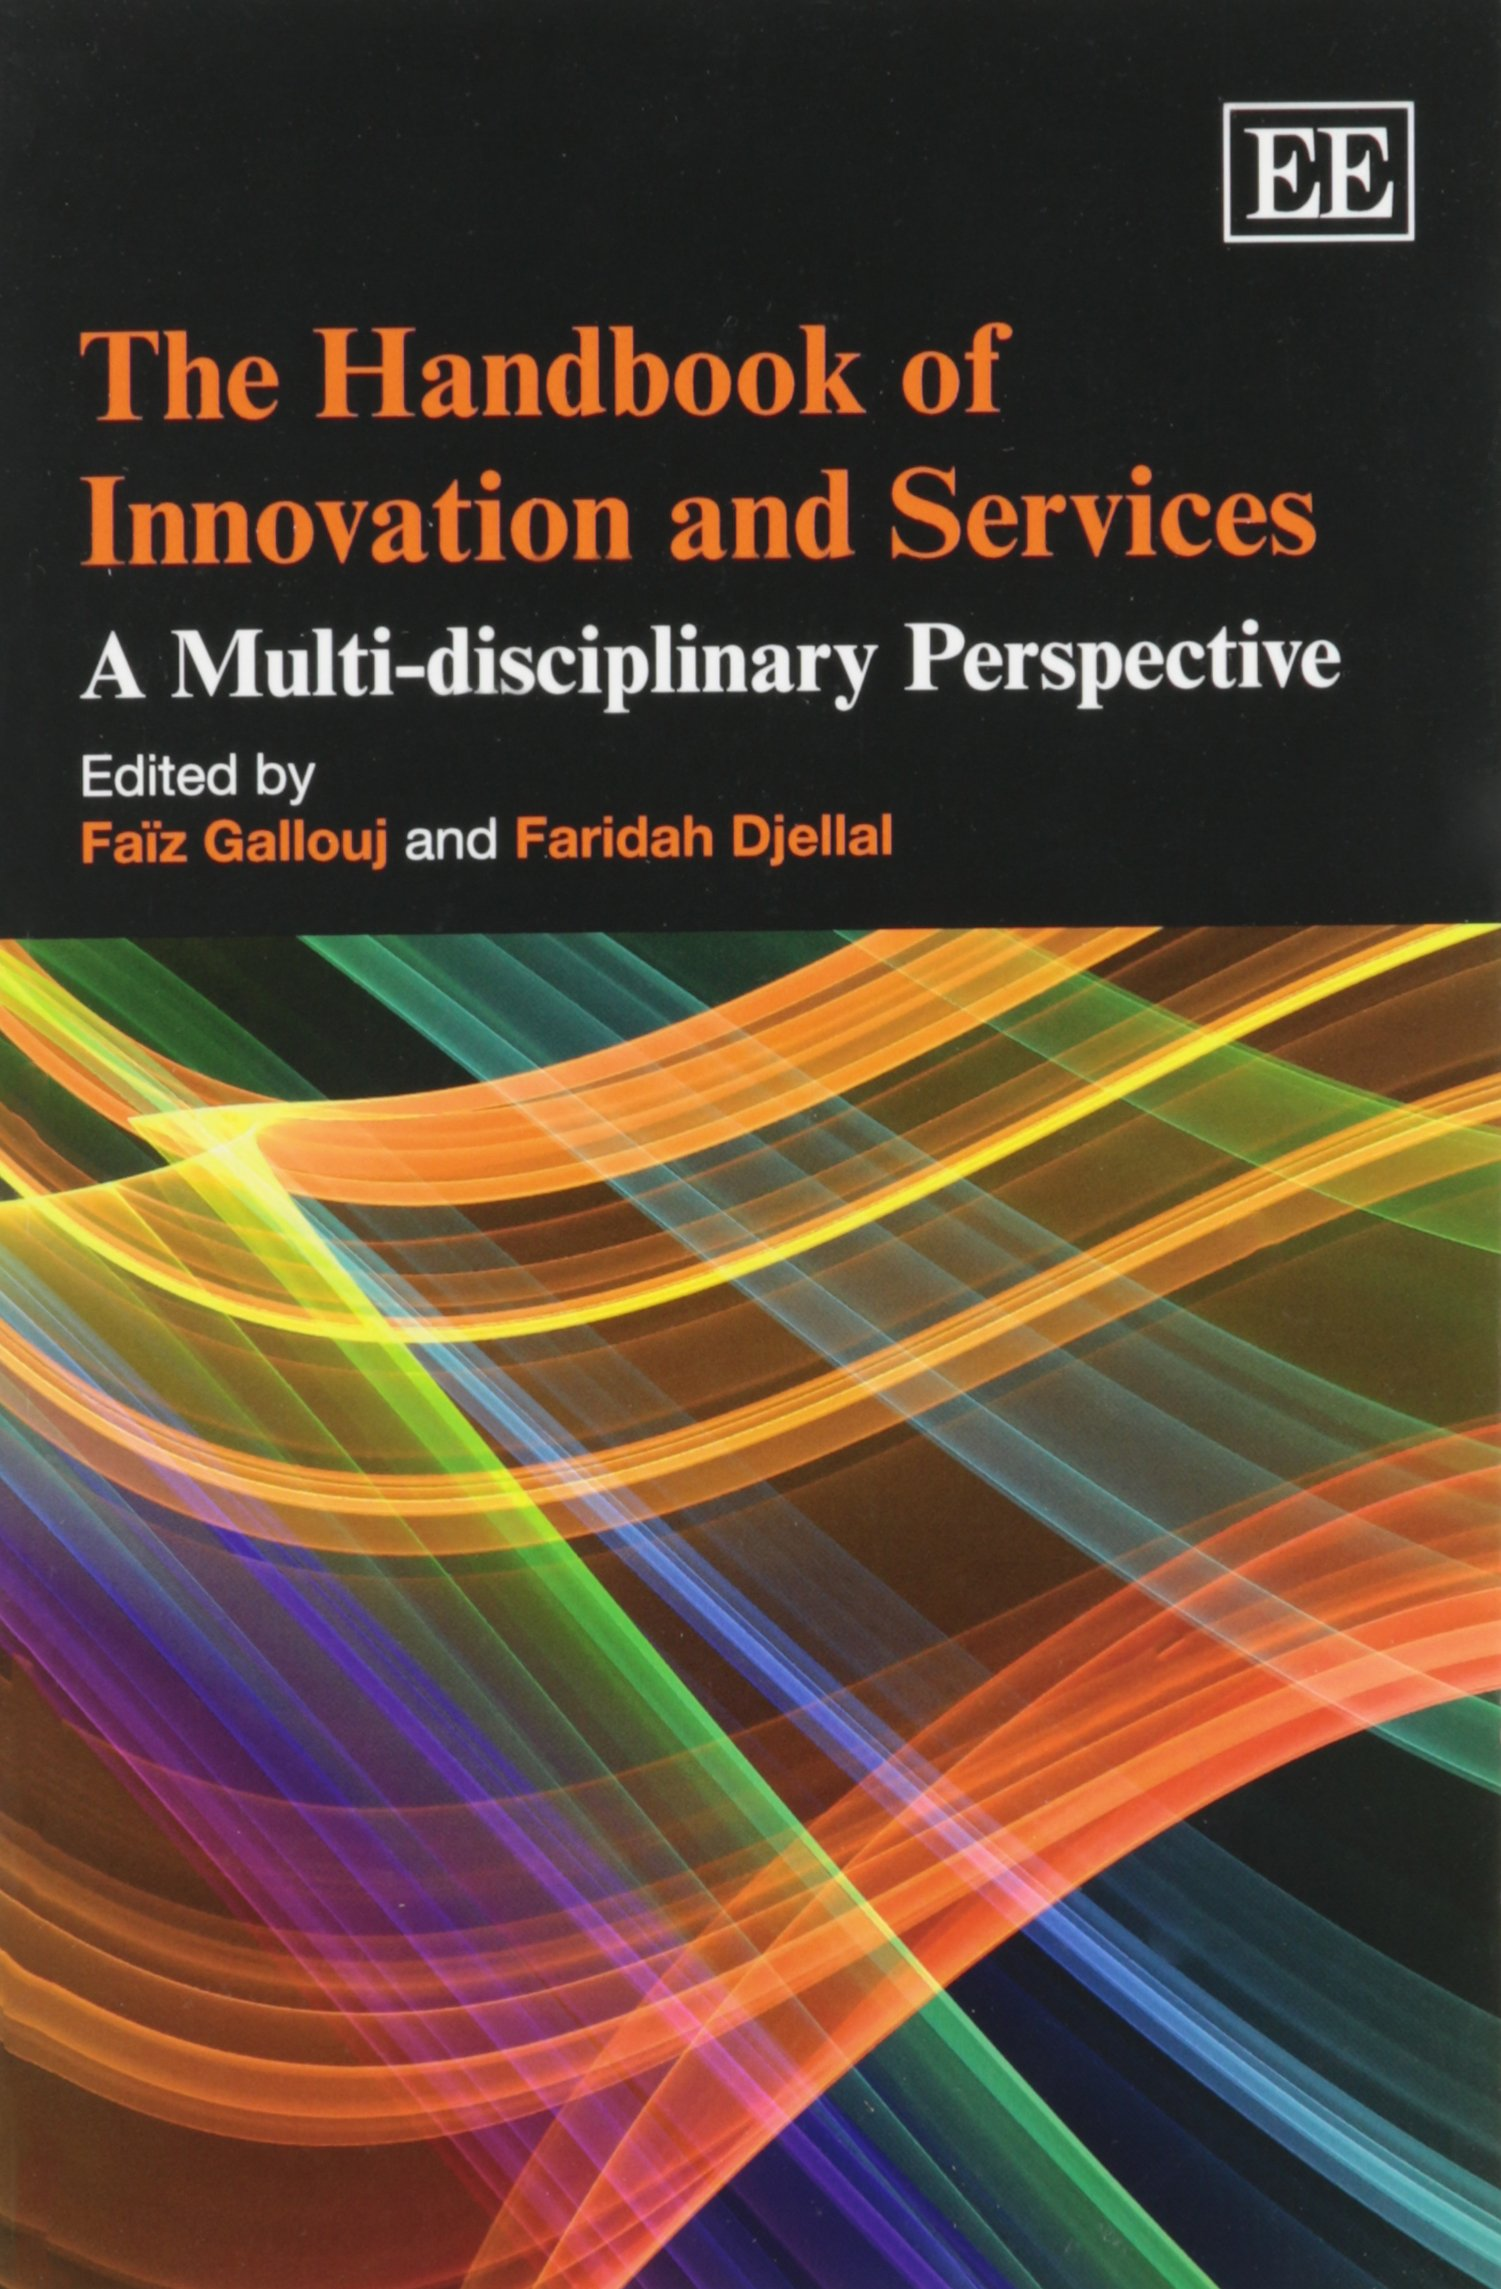 Image OfThe Handbook Of Innovation And Services: A Multi-disciplinary Perspective